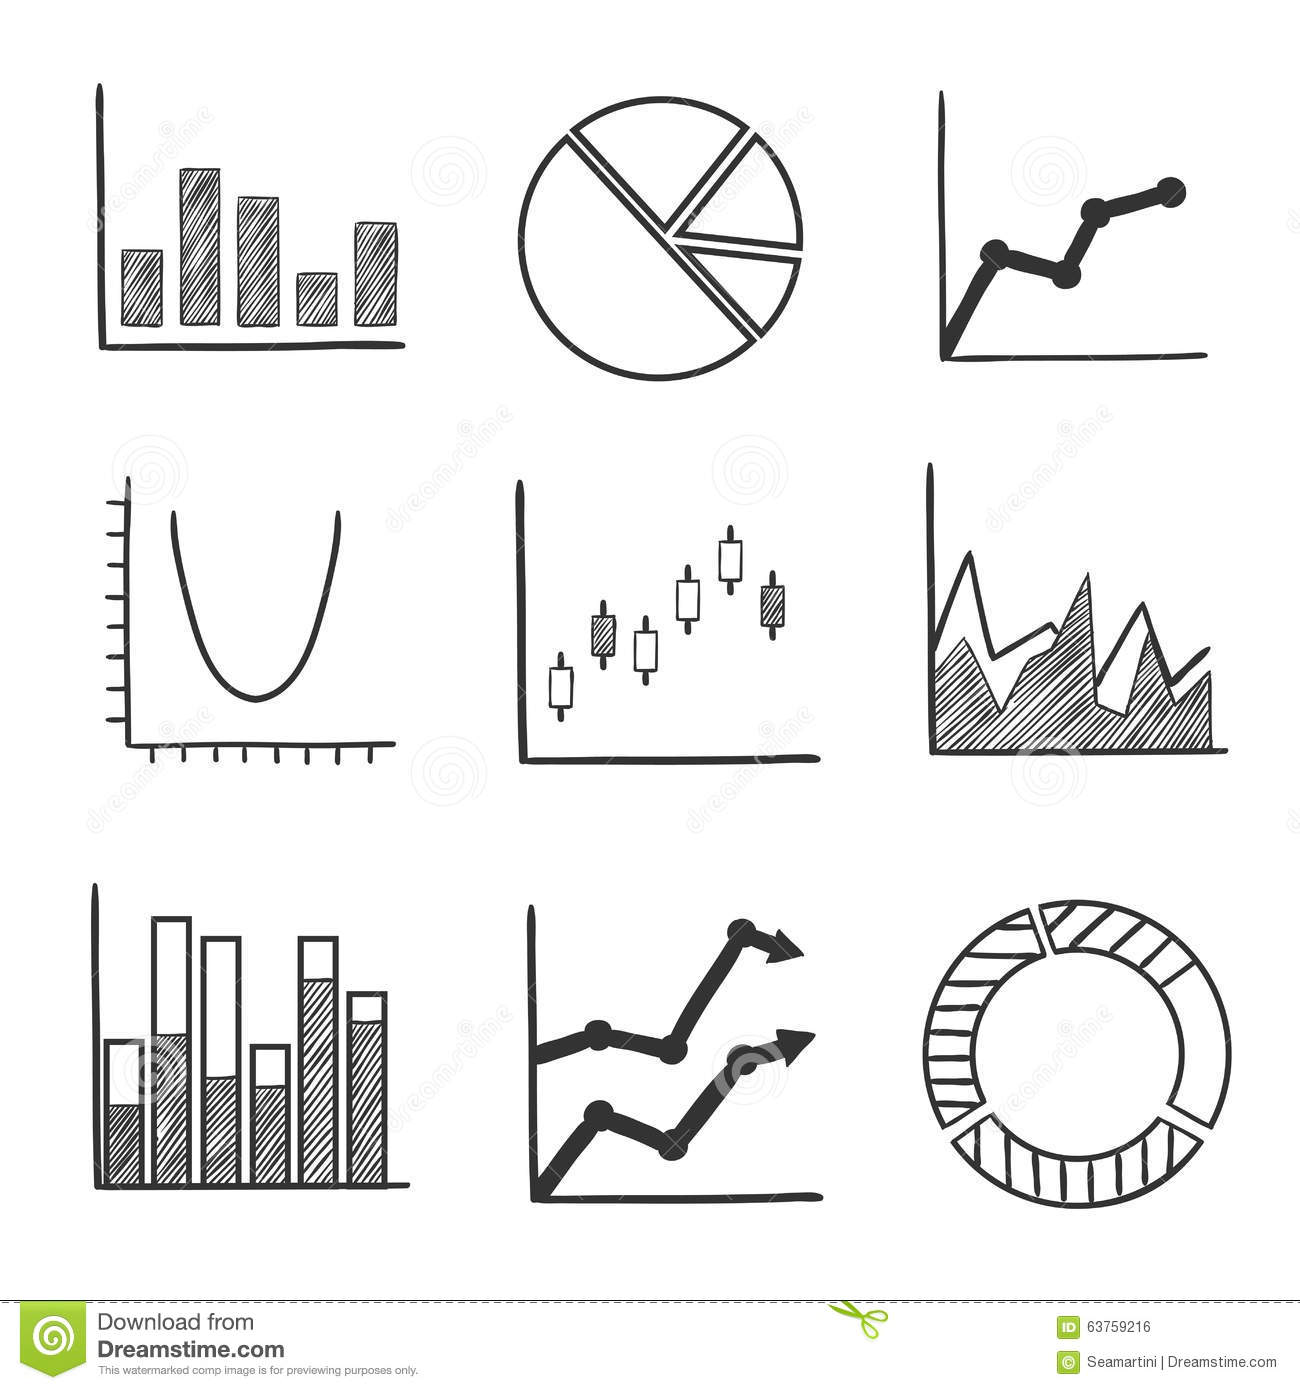 Sketch Style Icons Of Business Charts And Graphs Stock Vector ...